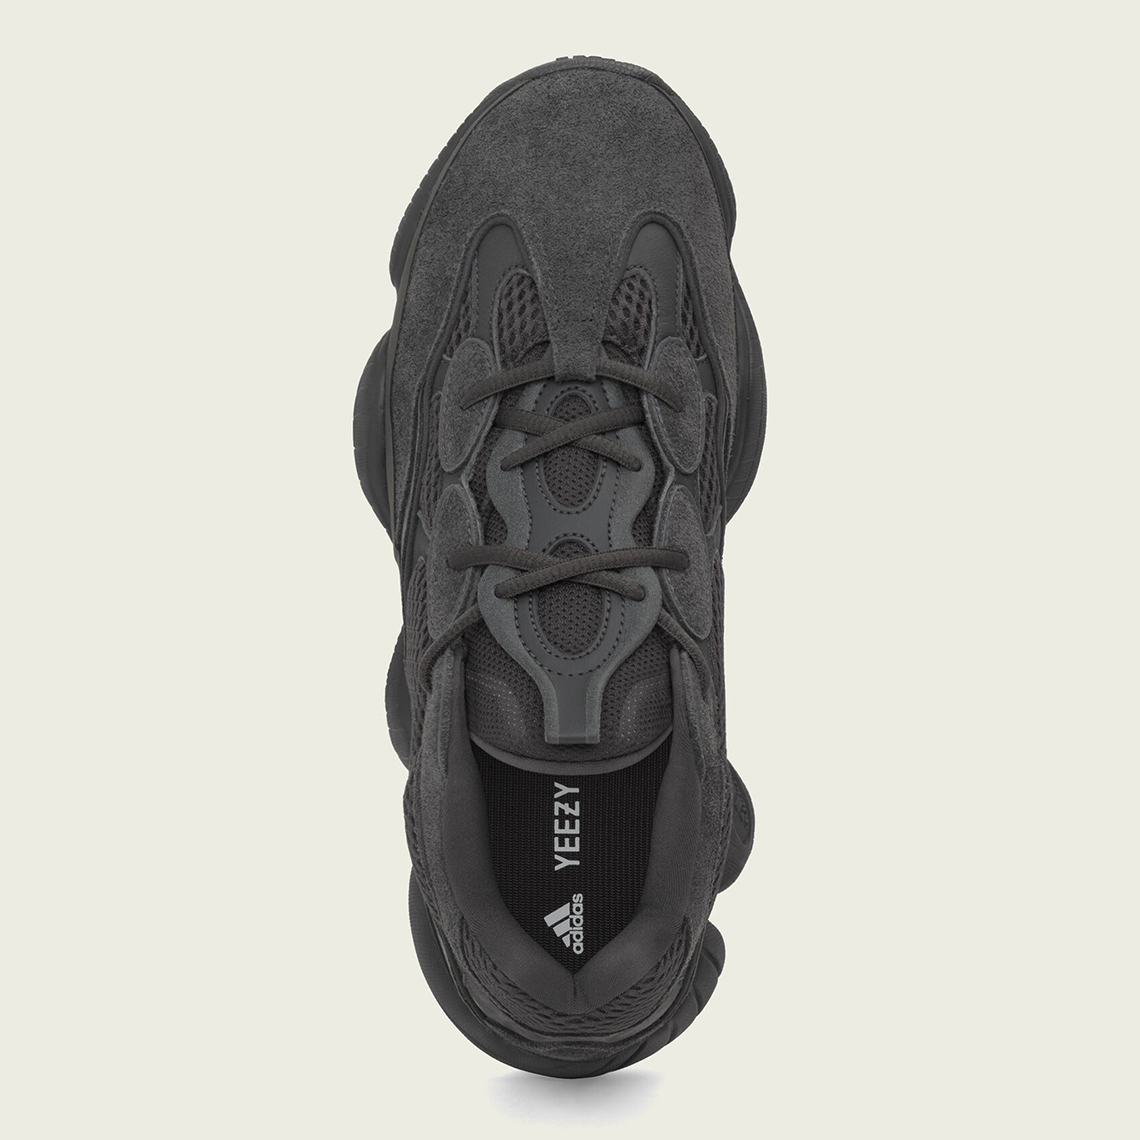 """adidas Yeezy 500 """"Utility Black"""" Release Confirmed For November 30th"""